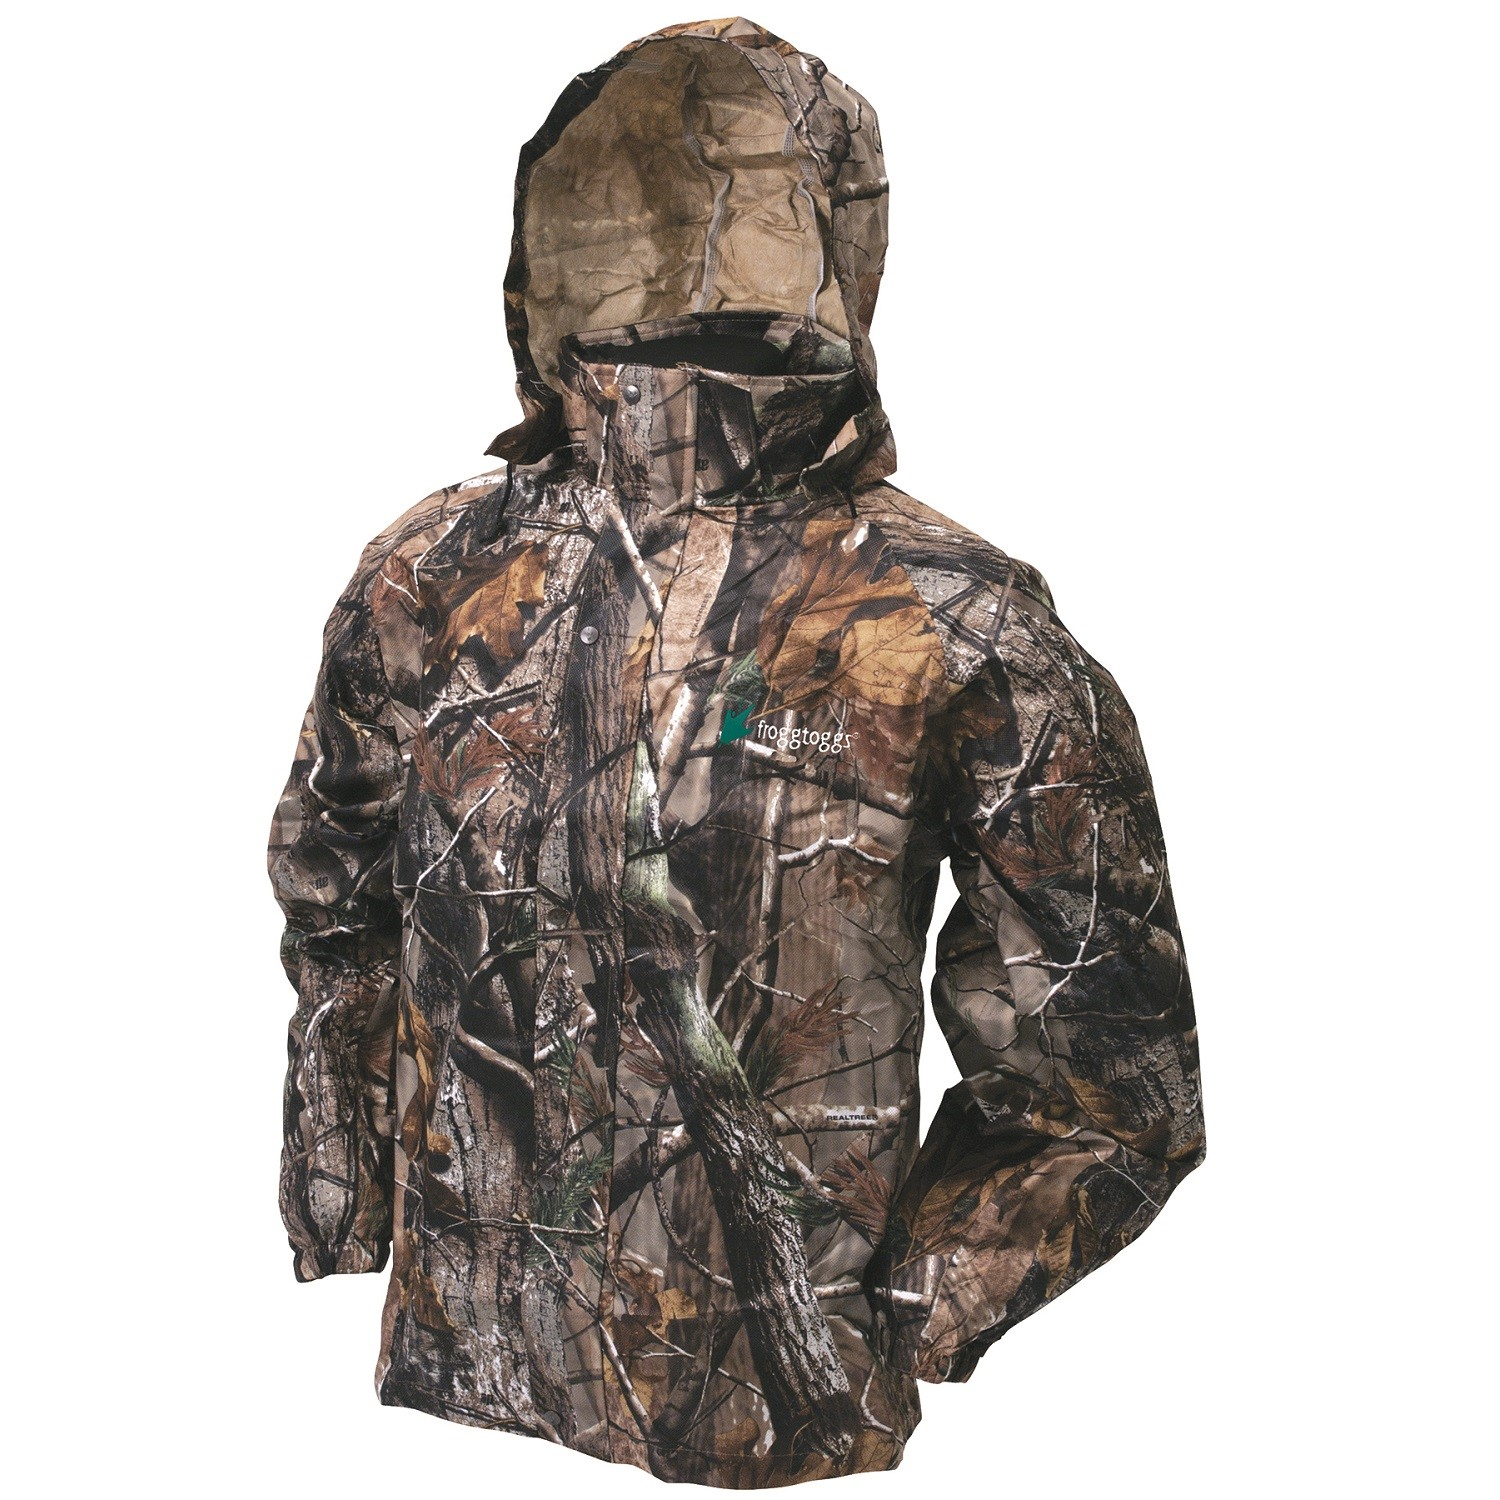 Click here to buy Frogg Toggs All Sports Camo Suit Sm AS1310-54GSm by Frogg Toggs.